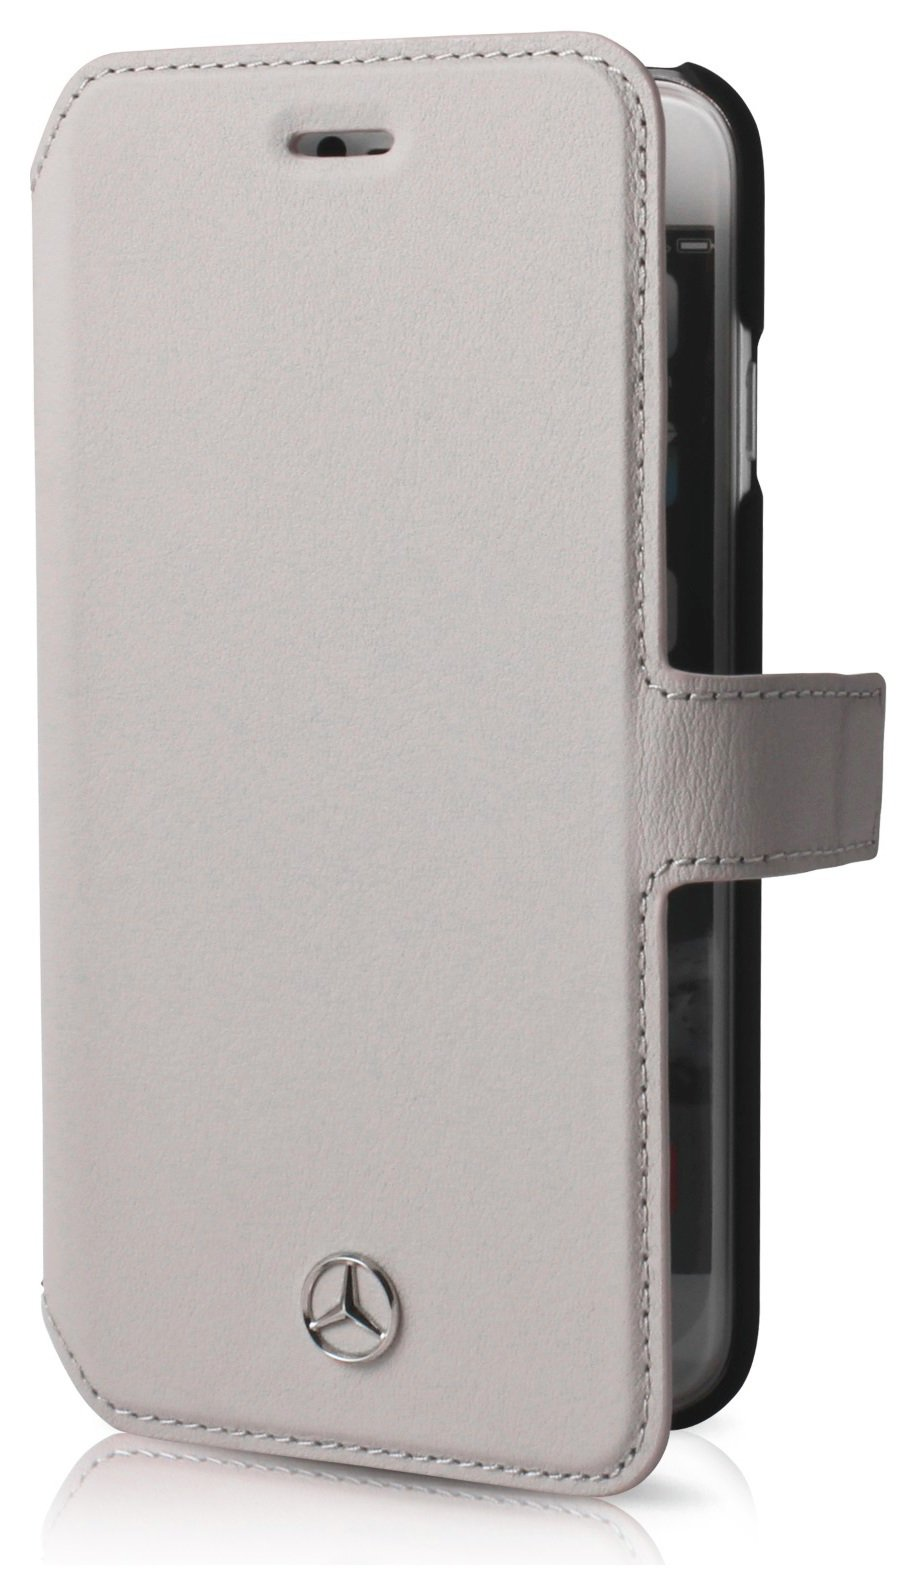 Mercedes iPhone 6/6s Leather Case - Grey.